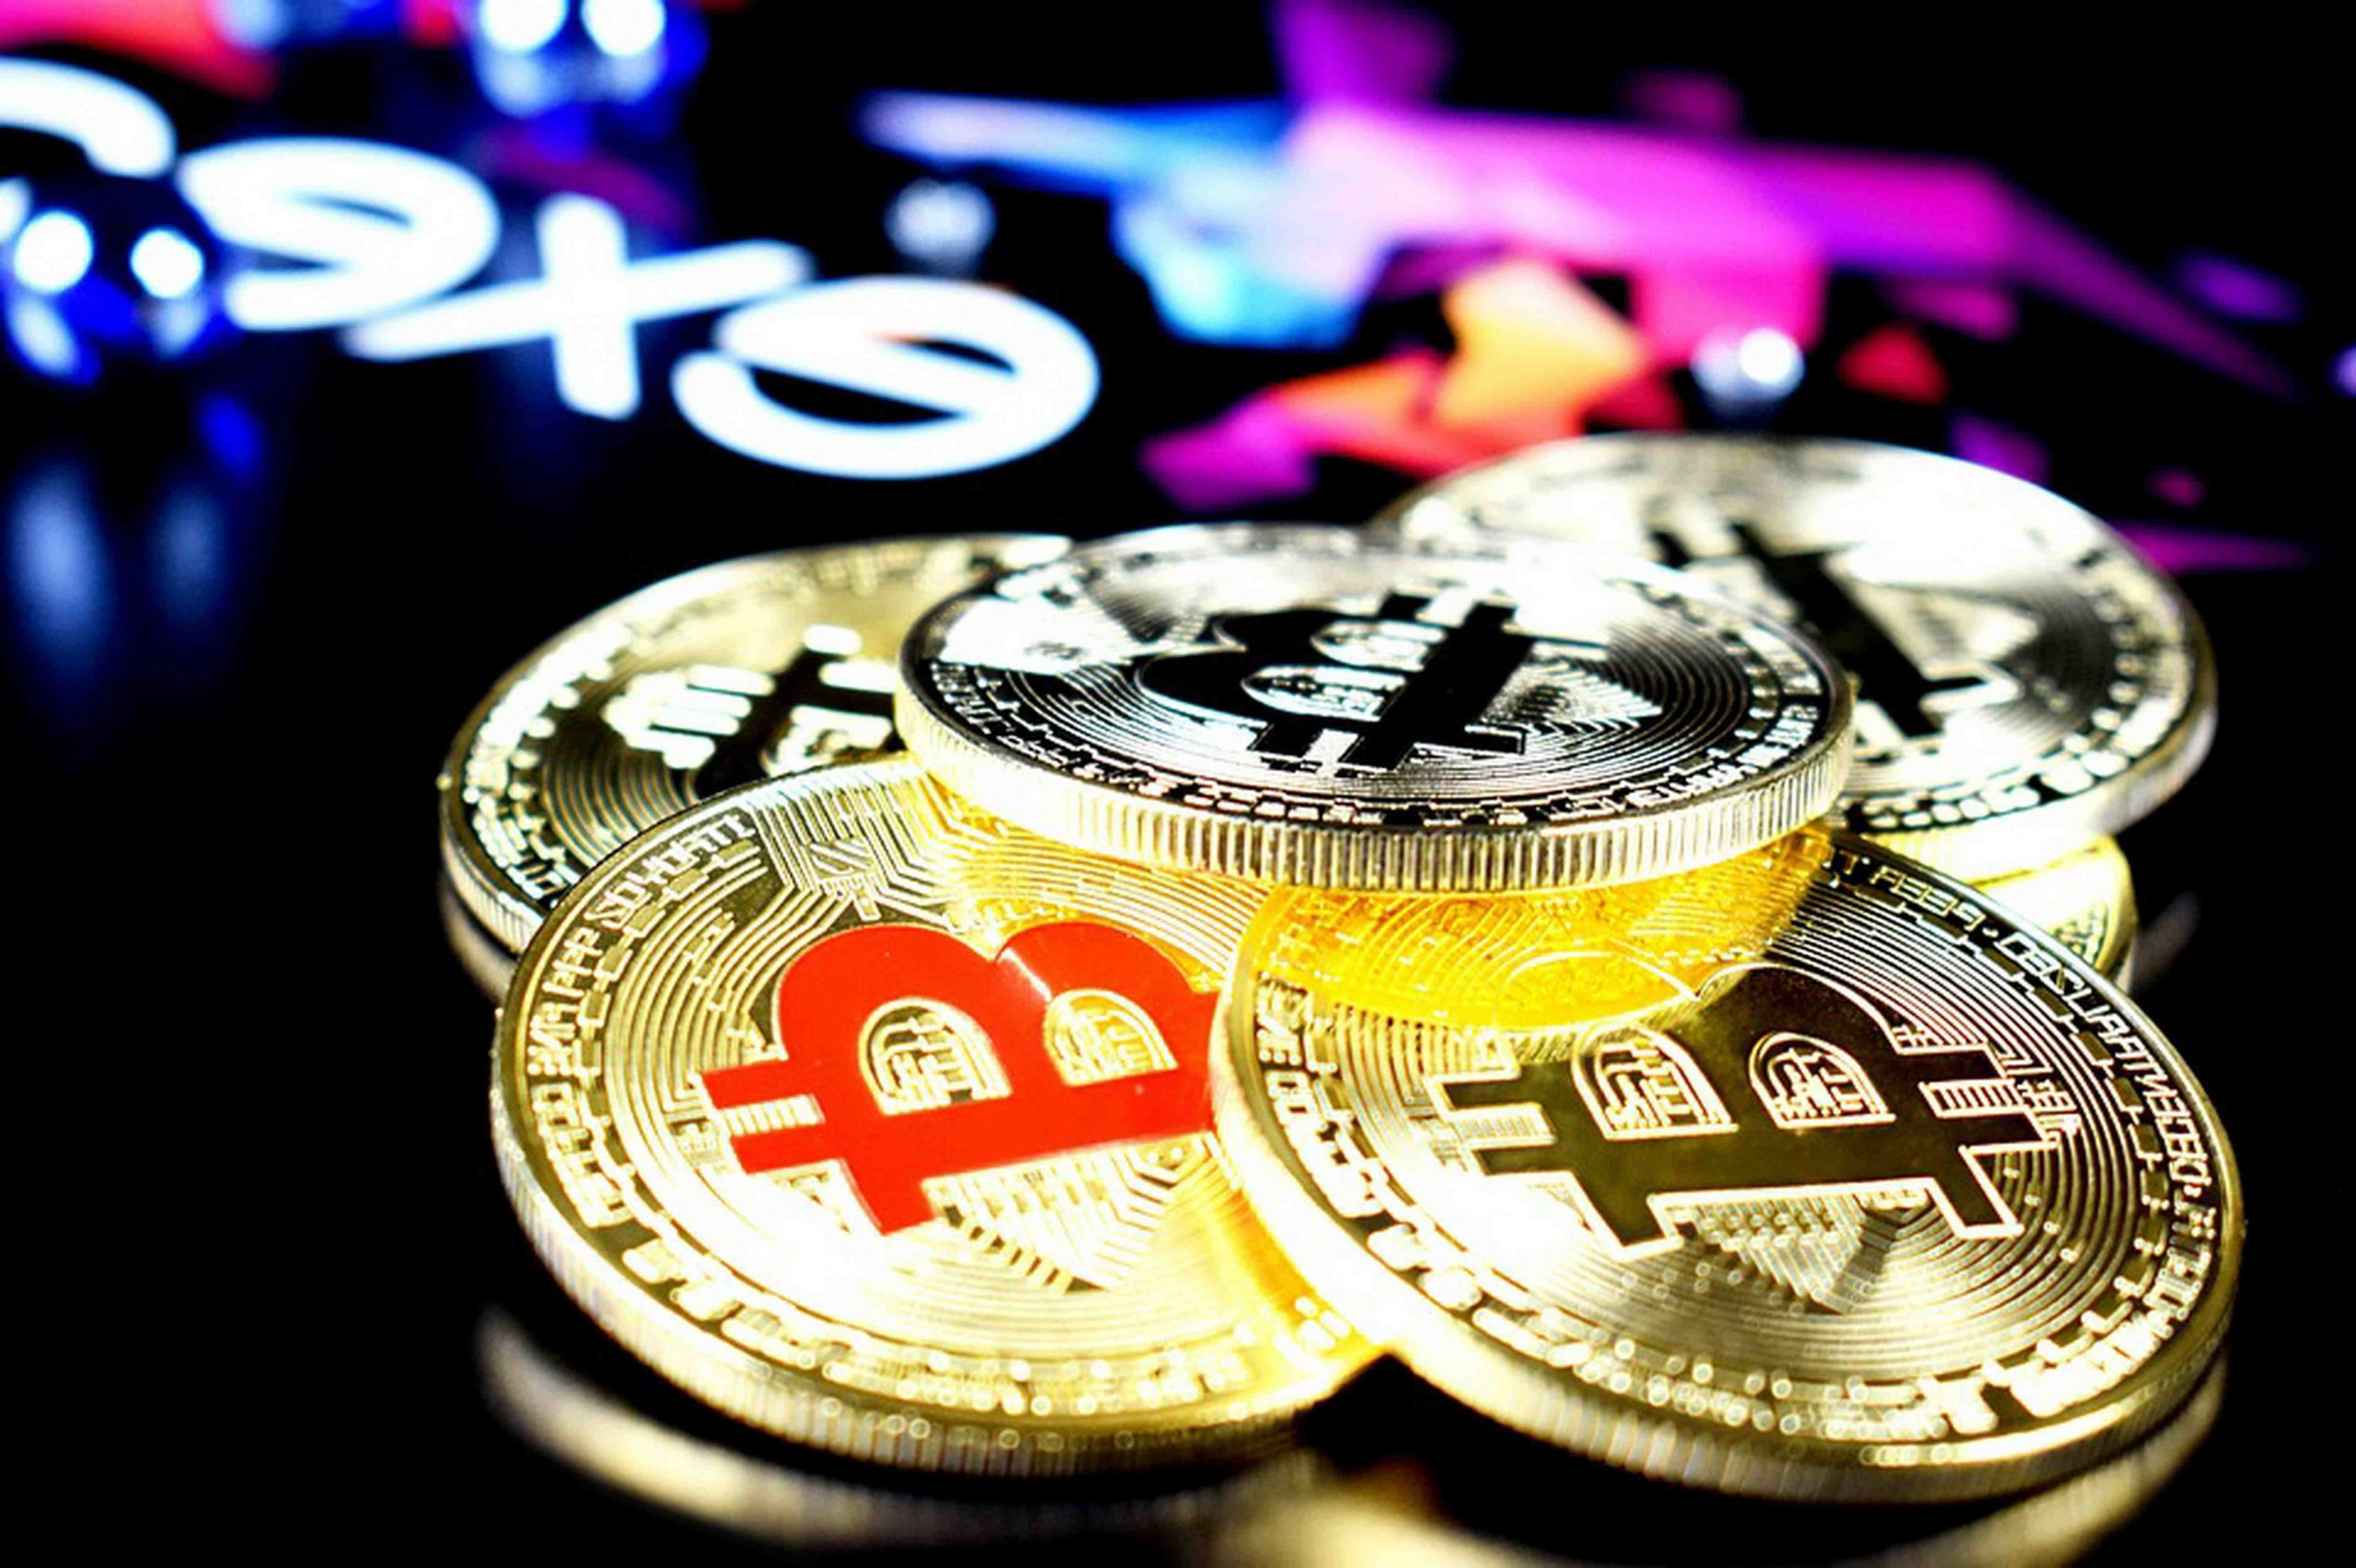 The Litecoin: another Bitcoin competitor